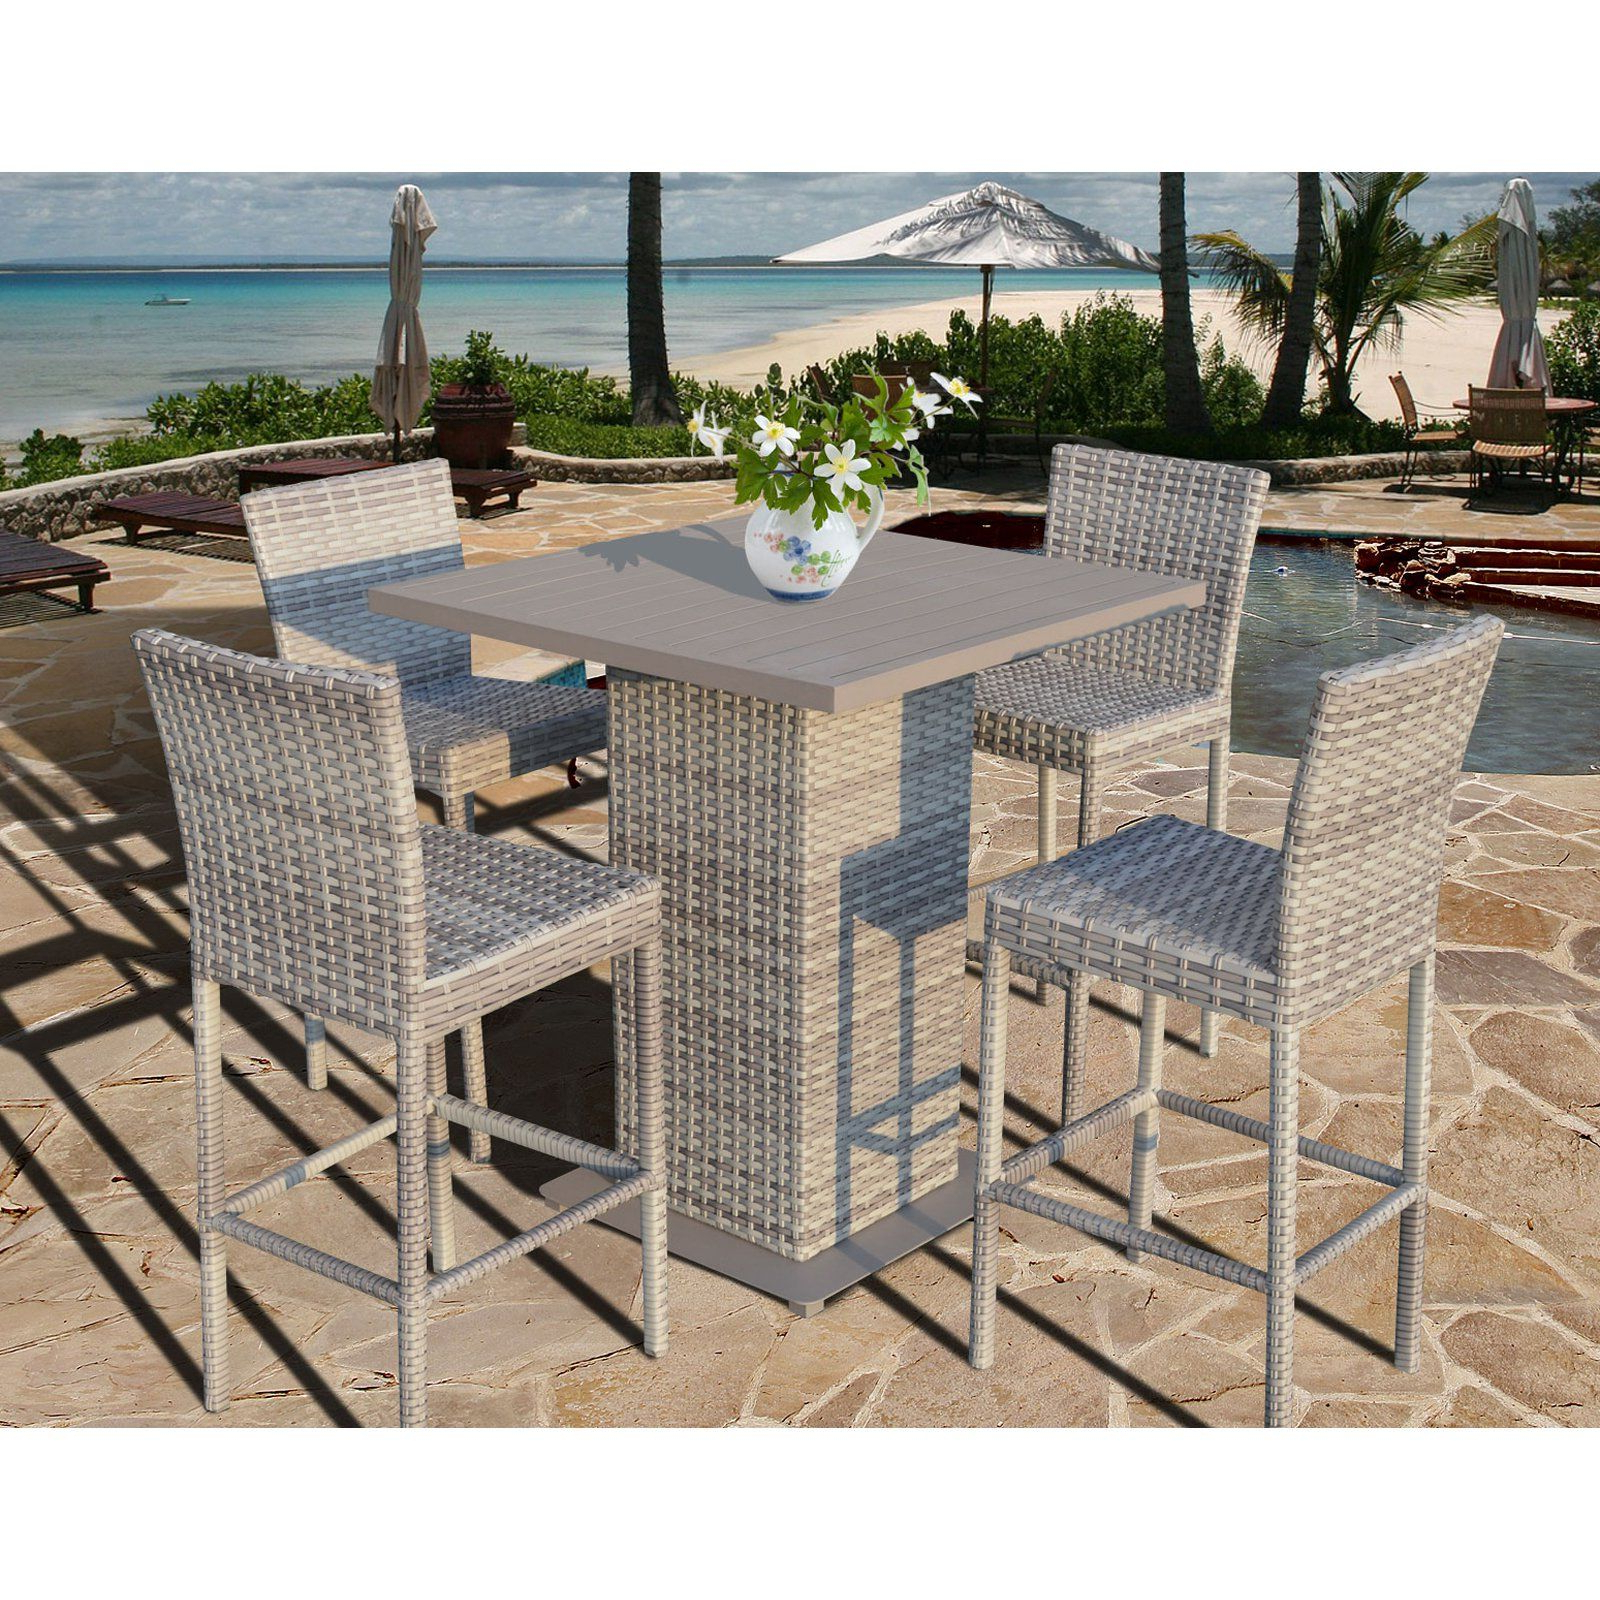 Patio Square Bar Dining Tables For 2017 Tk Classics Fairmont Collection Square Bar Height Dining Set (View 3 of 30)